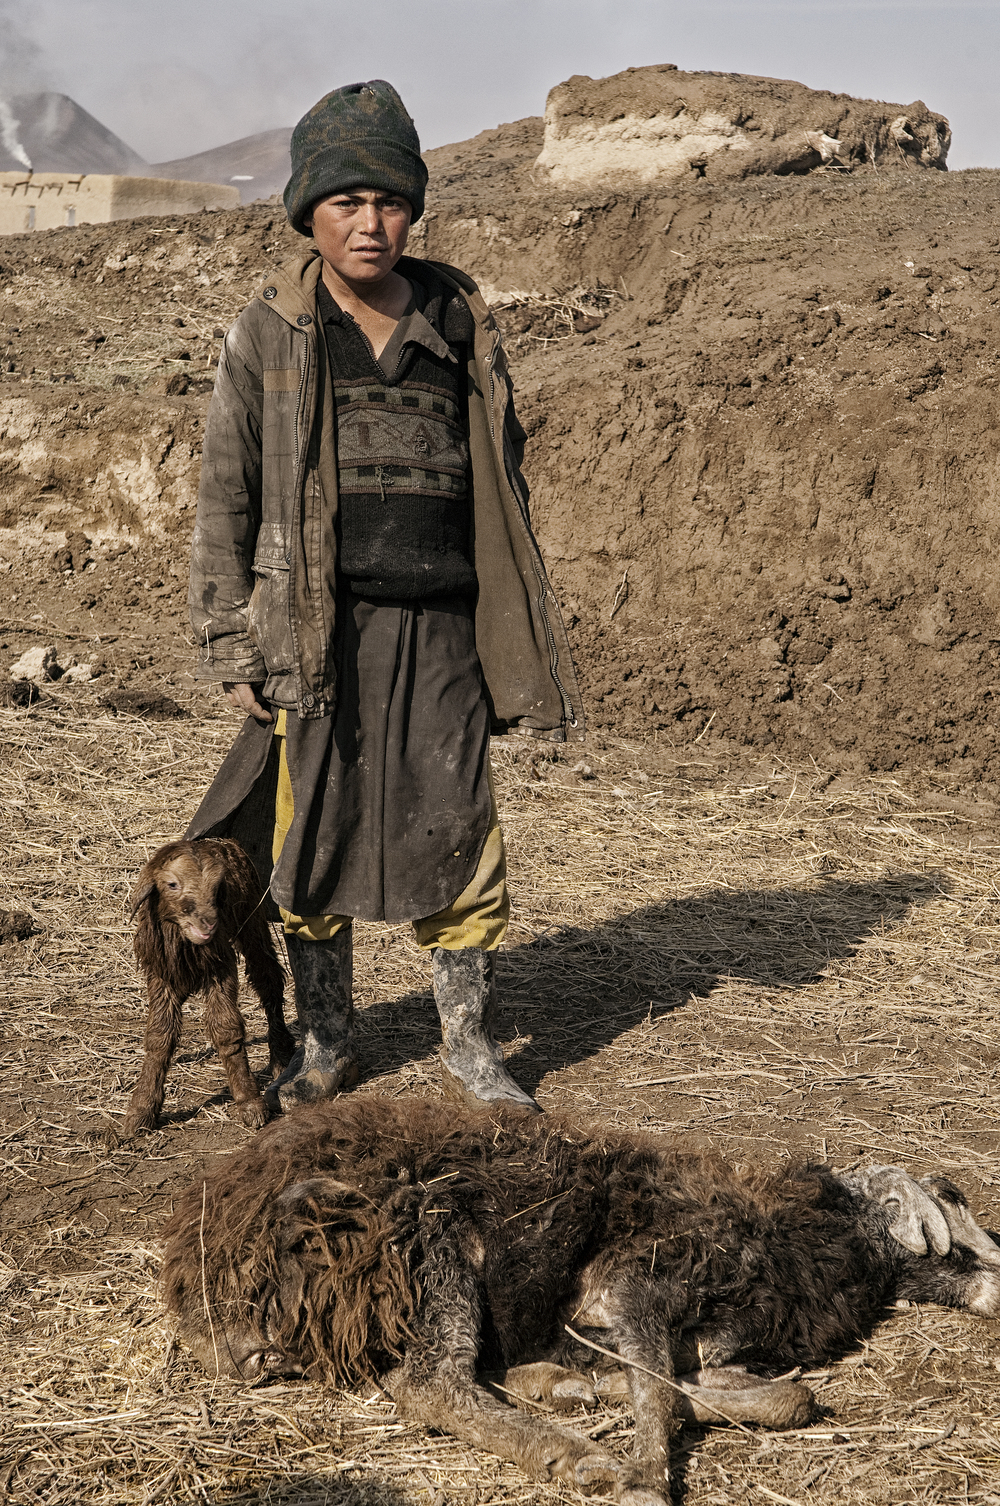 A young Afghan boy with his dead cattle in the village of Qasabach Qala, Faryab Province, Northwest Afghanistan on Friday 15th February, 2008.